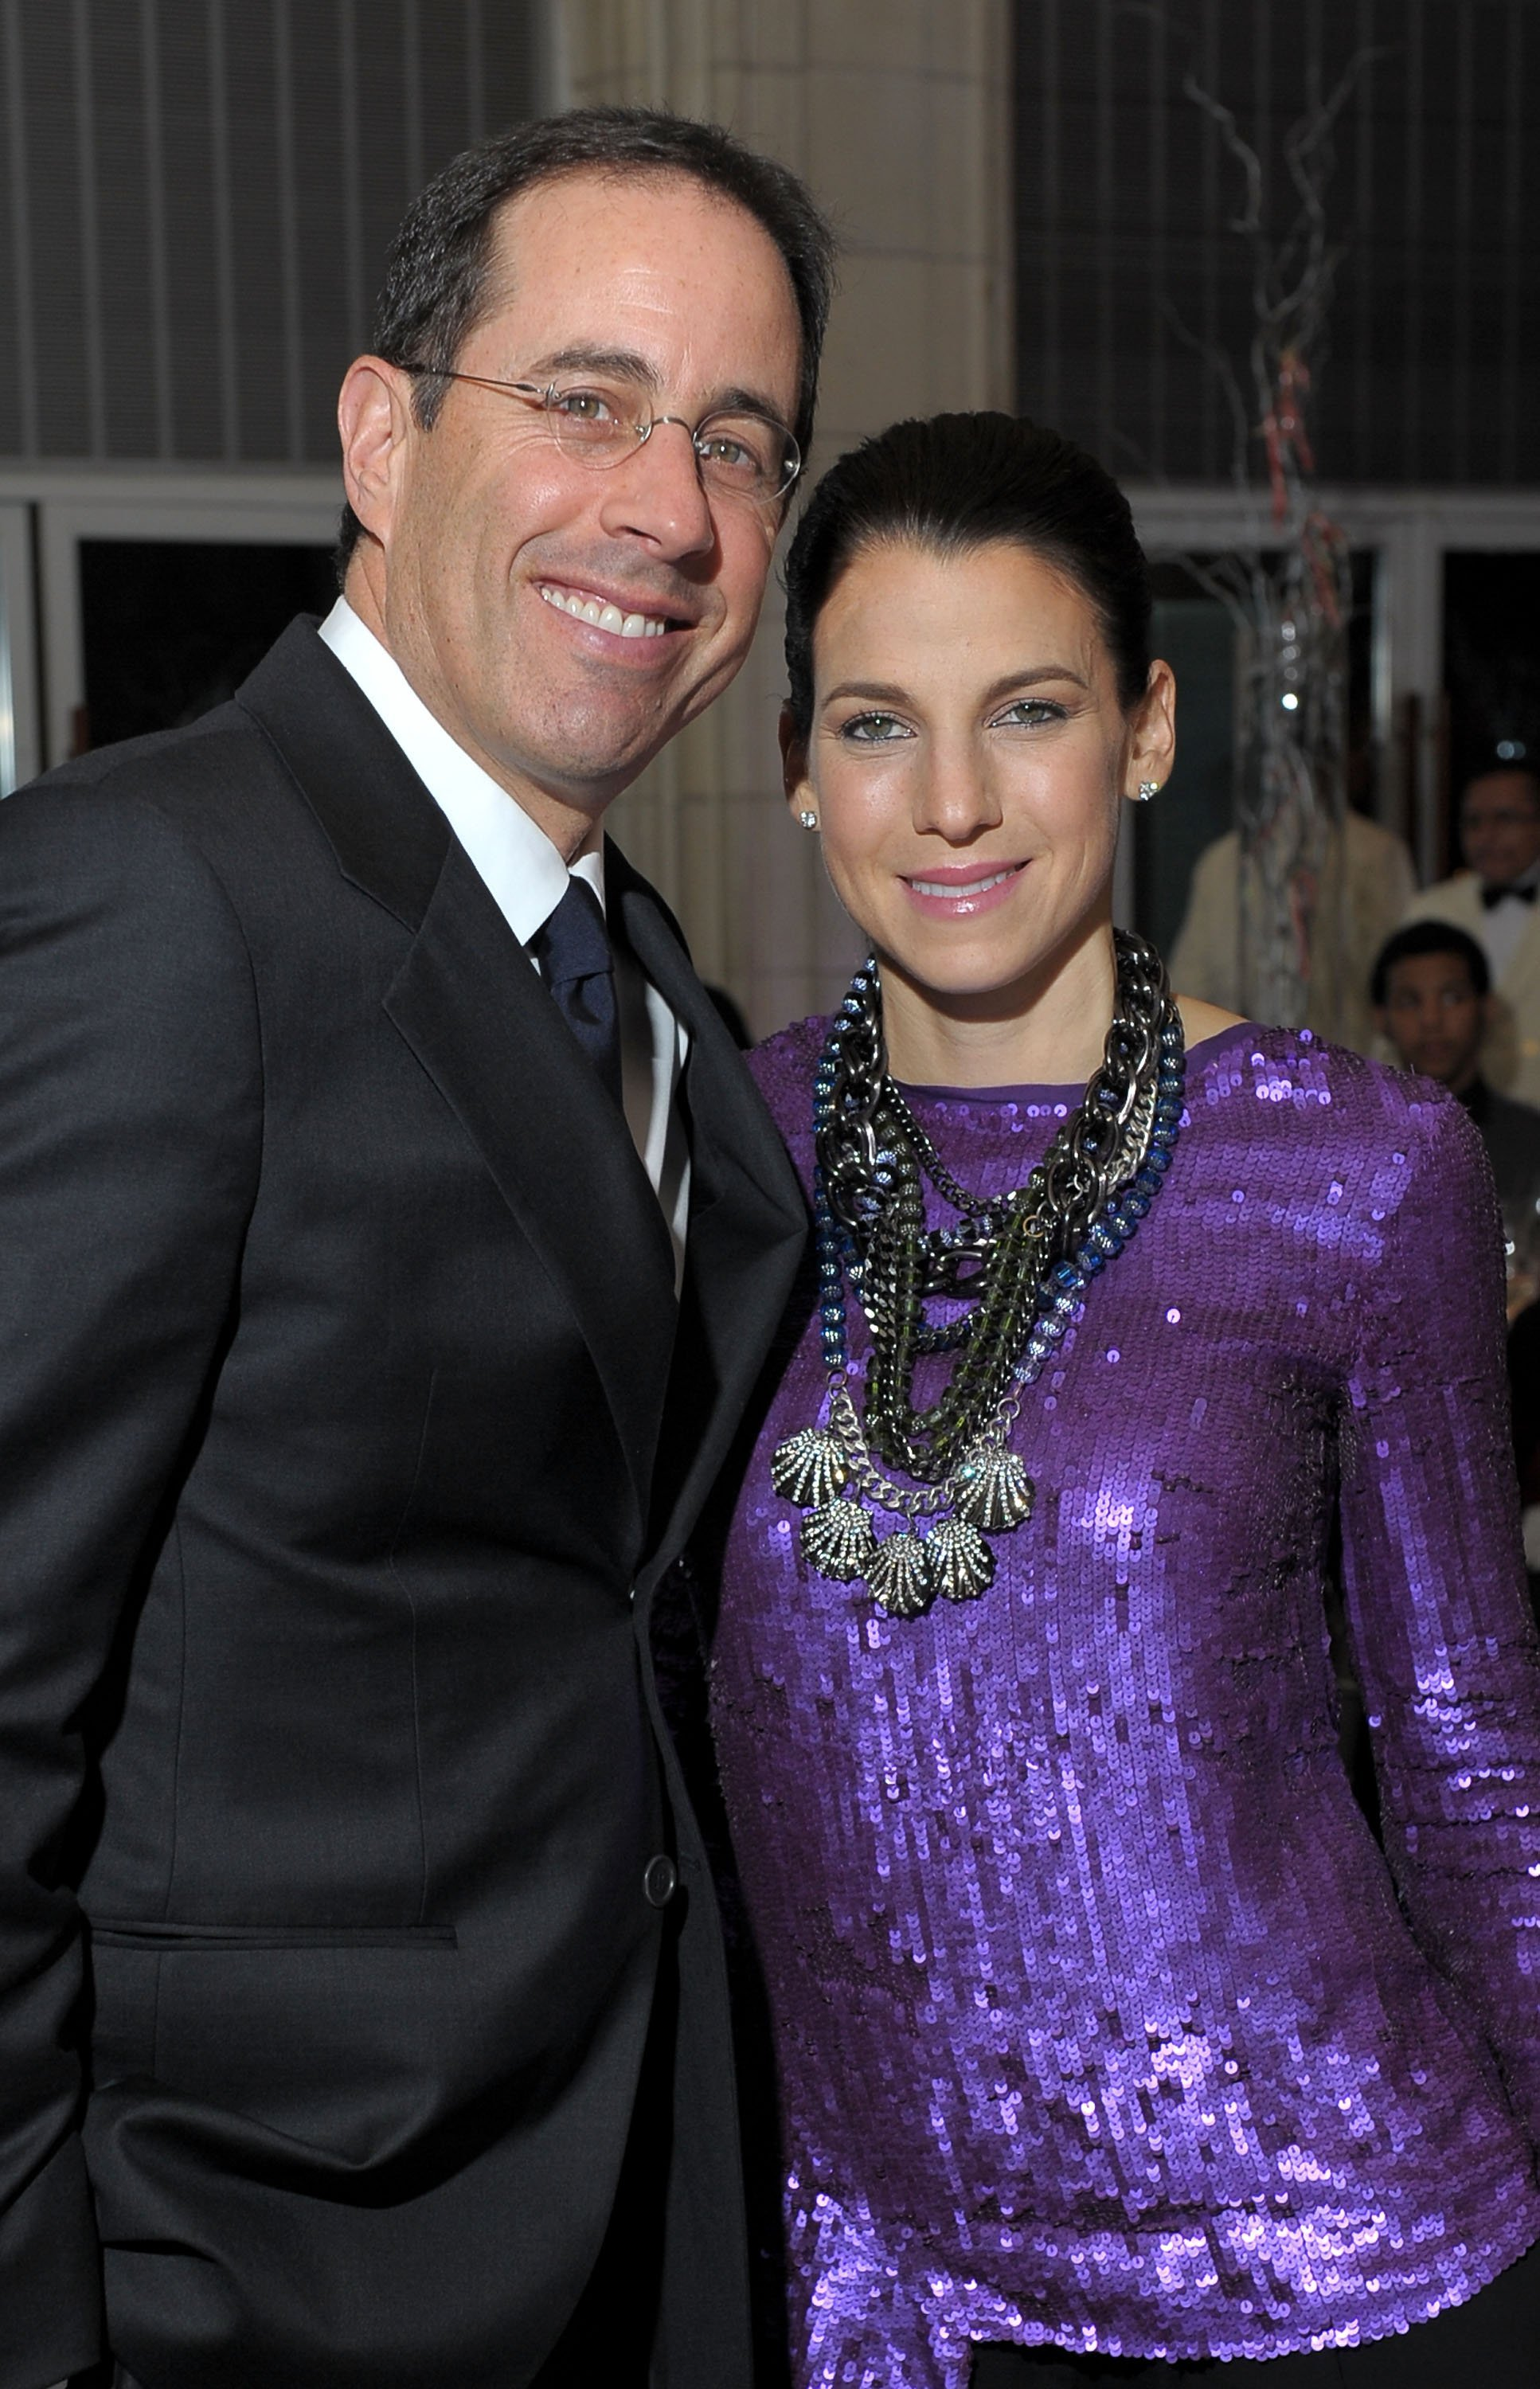 Jerry and Jessica Seinfeld. I Image: Getty Images.